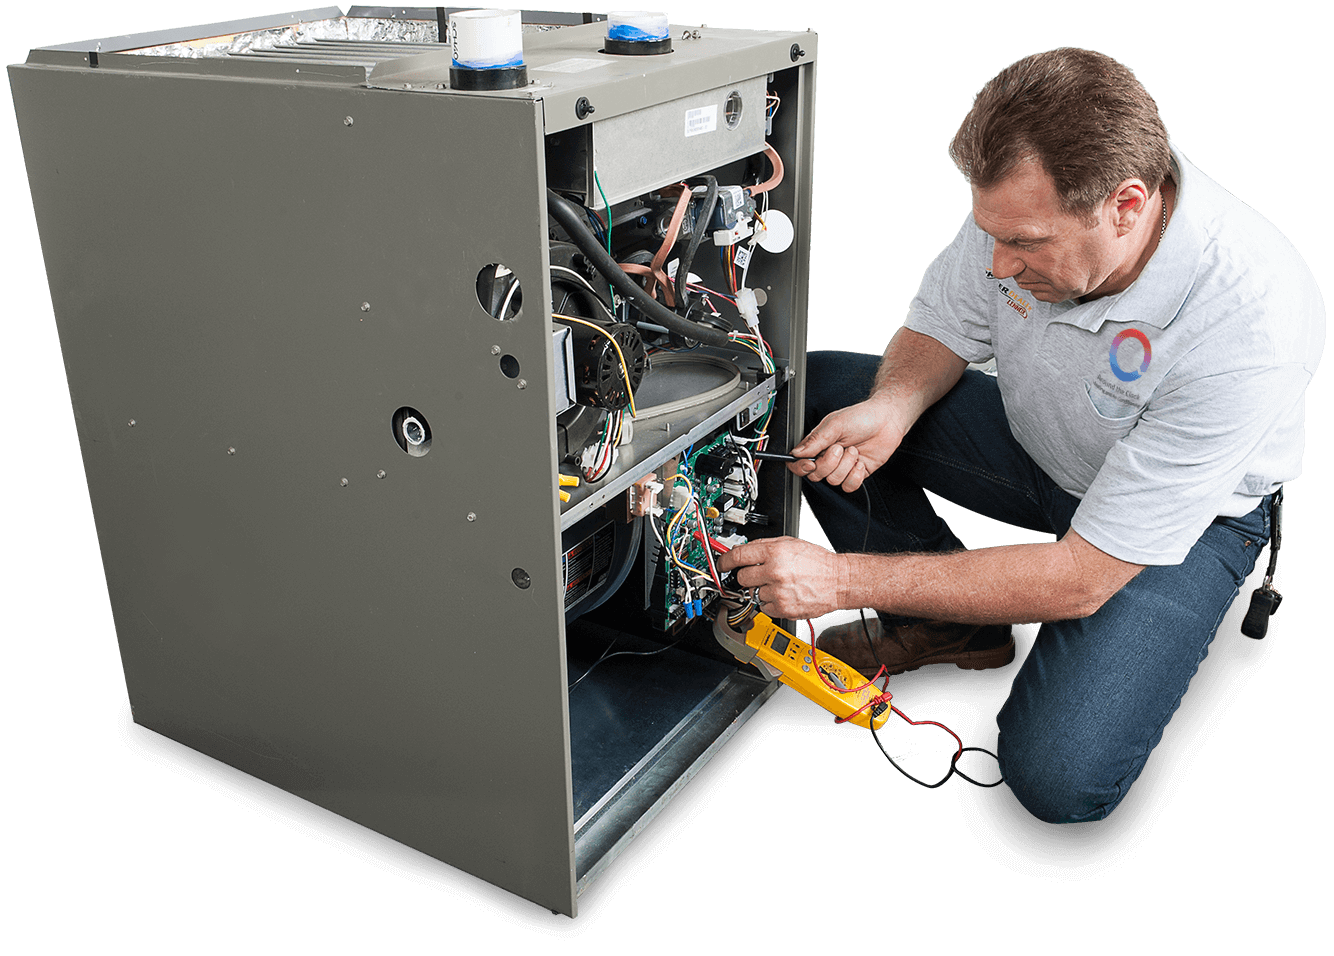 Heating and Air Conditioning Services in Santa Monica, California - Technician 3